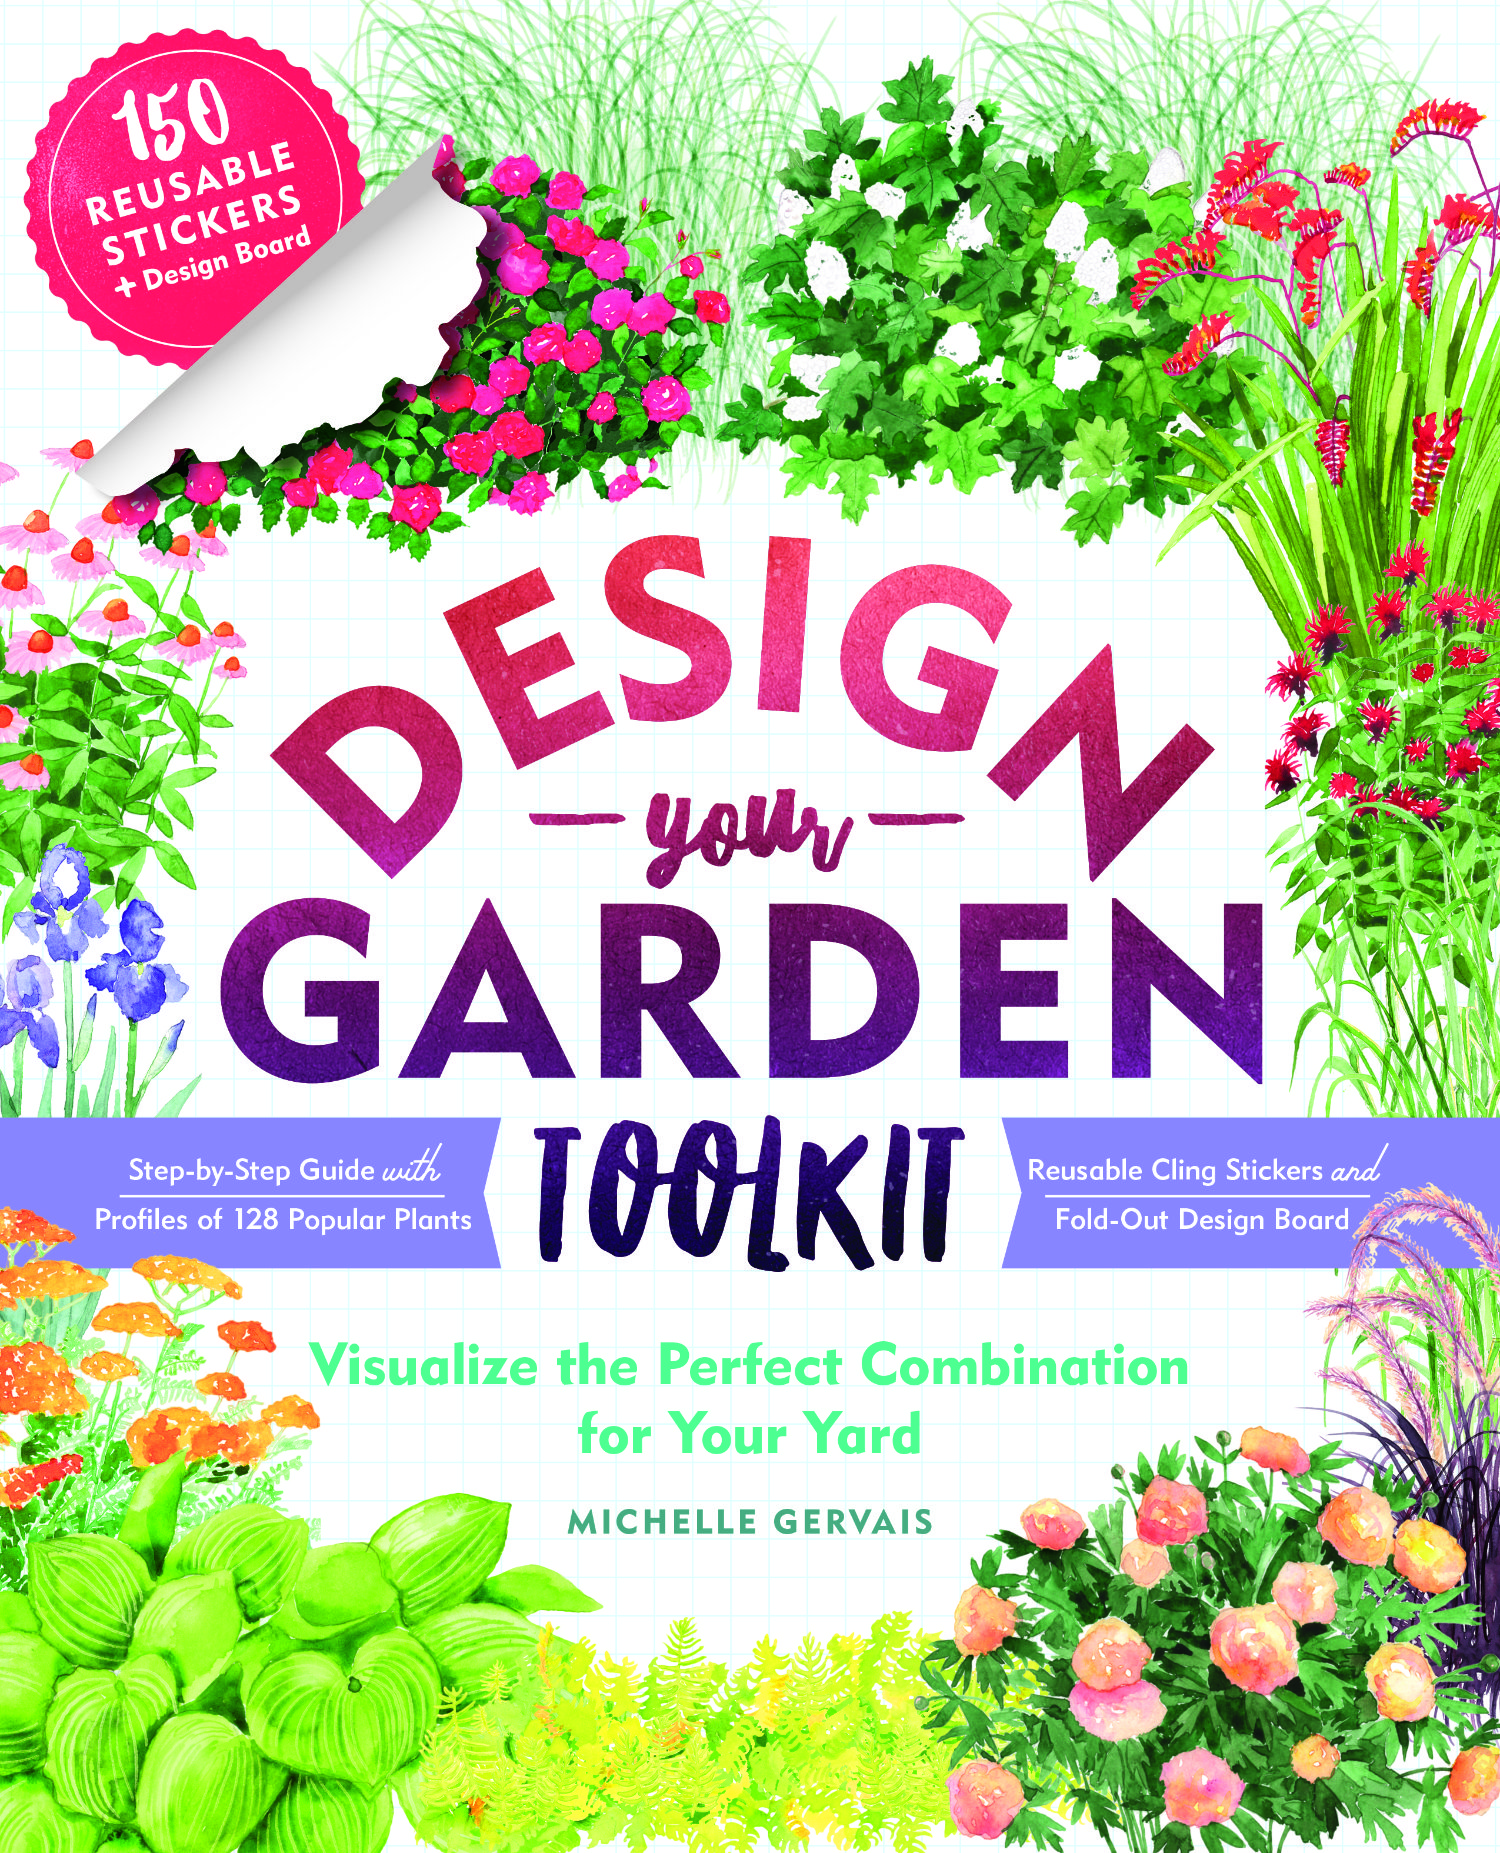 Design-Your-Garden Toolkit - Visualize the Perfect Plant Combinations for Your Yard; Step-by-Step Guide with Profiles of 128 Popular Plants, Reusable Cling Stickers, and Fold-Out Design Board